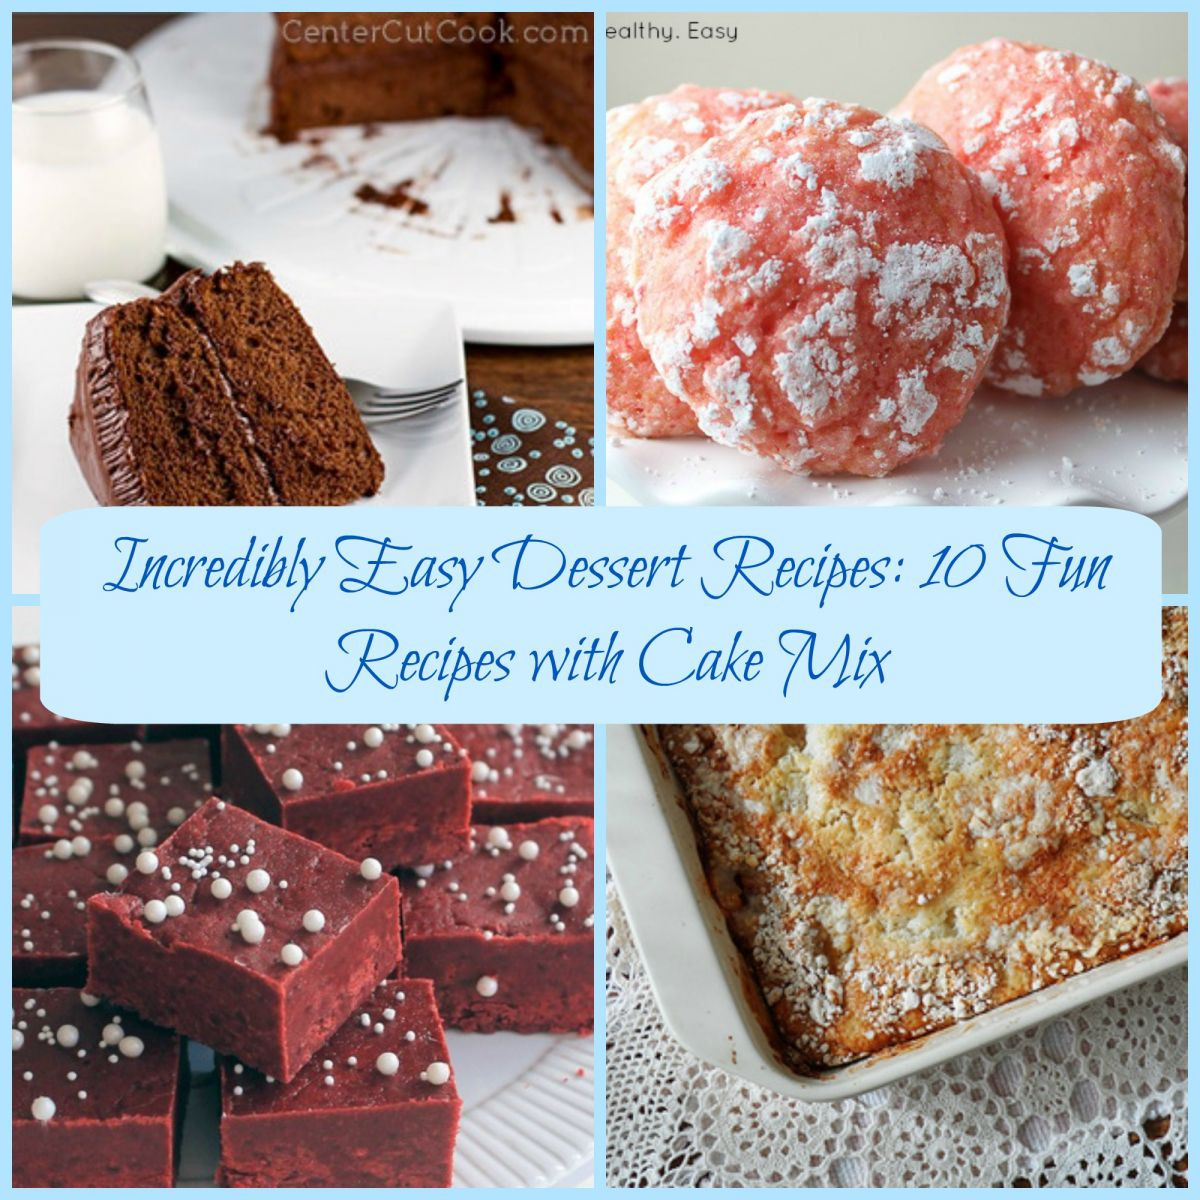 Cake Mix Desserts  Incredibly Easy Dessert Recipes 10 Fun Recipes with Cake